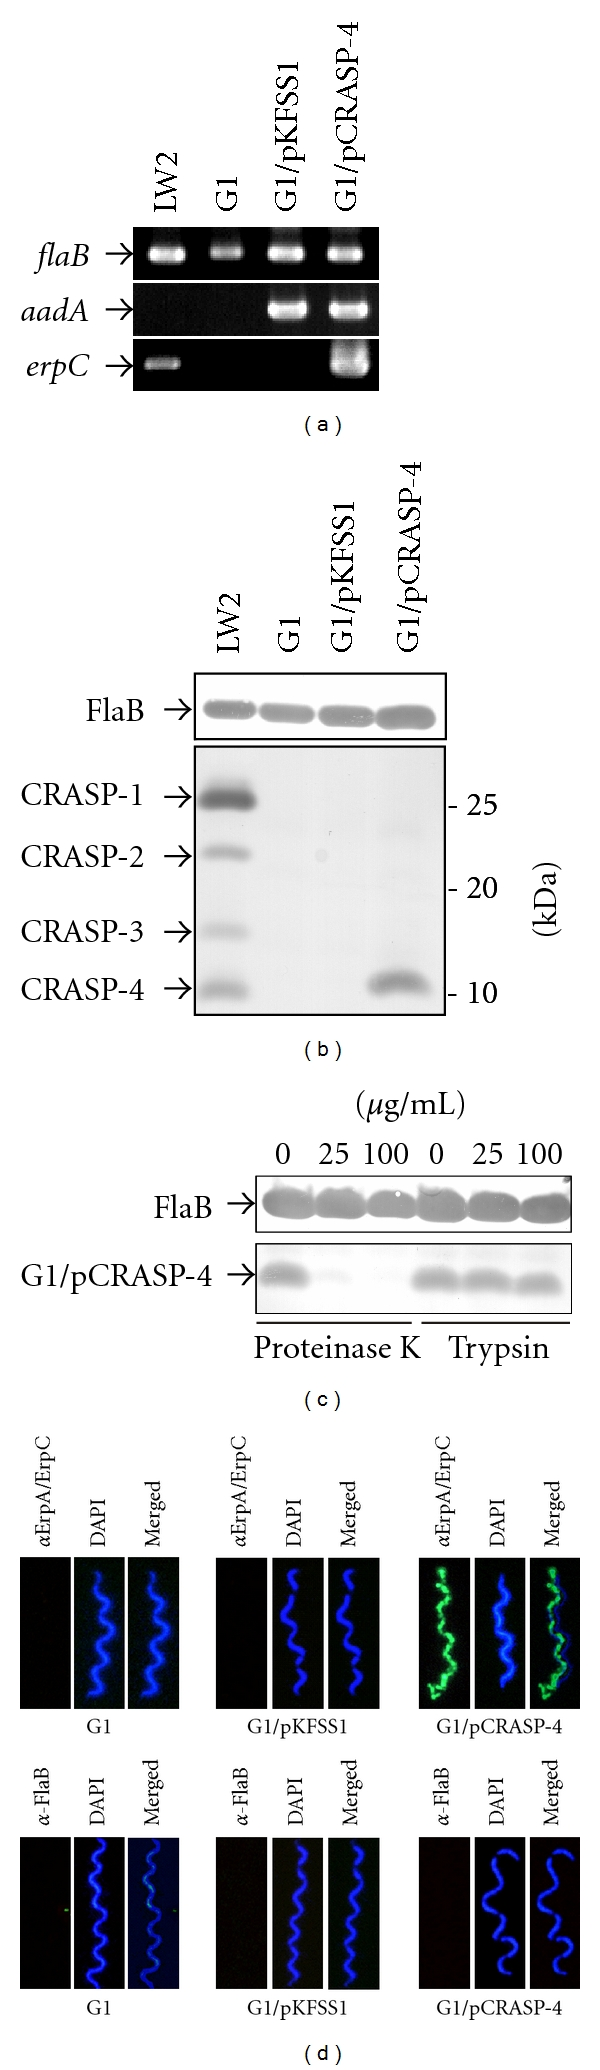 Characterization of B. garinii G1 producing CRASP-4. (a) B. garinii G1 and transformed strains G1/pKFSS1 and G1/pCRASP-4 were characterized by PCR amplification using flaB- , aadA- , and erpC -specific primers, as listed in Table 1 . (b) Synthesis of CRASP-4 by transformed G1 was assessed using ligand affinity blotting. Whole cell lysates (15 μ g each) of G1, G1/pKFSS1 and G1/pCRASP-4 were separated by SDS-PAGE, and transferred to nitrocellulose. After incubation with NHS, binding of CFH to CRASP-4 was identified using a polyclonal antiserum. A monoclonal antibody, L41 1C11, specific for the flagellin protein FlaB, was applied to show equal loading of borrelial lysates. (c) Surface localization of CRASP-4 in transformed G1 cells. Spirochetes were incubated with or without proteinase K or trypsin, respectively, then lysed by sonication, and total proteins were separated by SDS-PAGE. CRASP-4 was identified by ligand affinity analysis as described above. Flagellin (FlaB) was detected with MAb L41 1C11 (dilution 1/1000) by Western blotting. (d) Demonstration of surface expression of CRASP-4 by transformed B. garinii G1, by indirect immunofluoresecence microscopy of intact borrelial cells. Spirochetes were incubated with rabbit polyclonal anti-ErpA/ErpC antiserum before fixation. Periplasmic FlaB, used as control, was detected by mAb L41 1C11 using fixed and unfixed cells. For counterstaining, the DNA-binding dye DAPI was used to identify all bacteria. Slides were visualized at a magnification of ×1,000 using an Olympus CX40 fluorescence microscope mounted with a DS-5Mc charge-coupled device camera (Nikon).